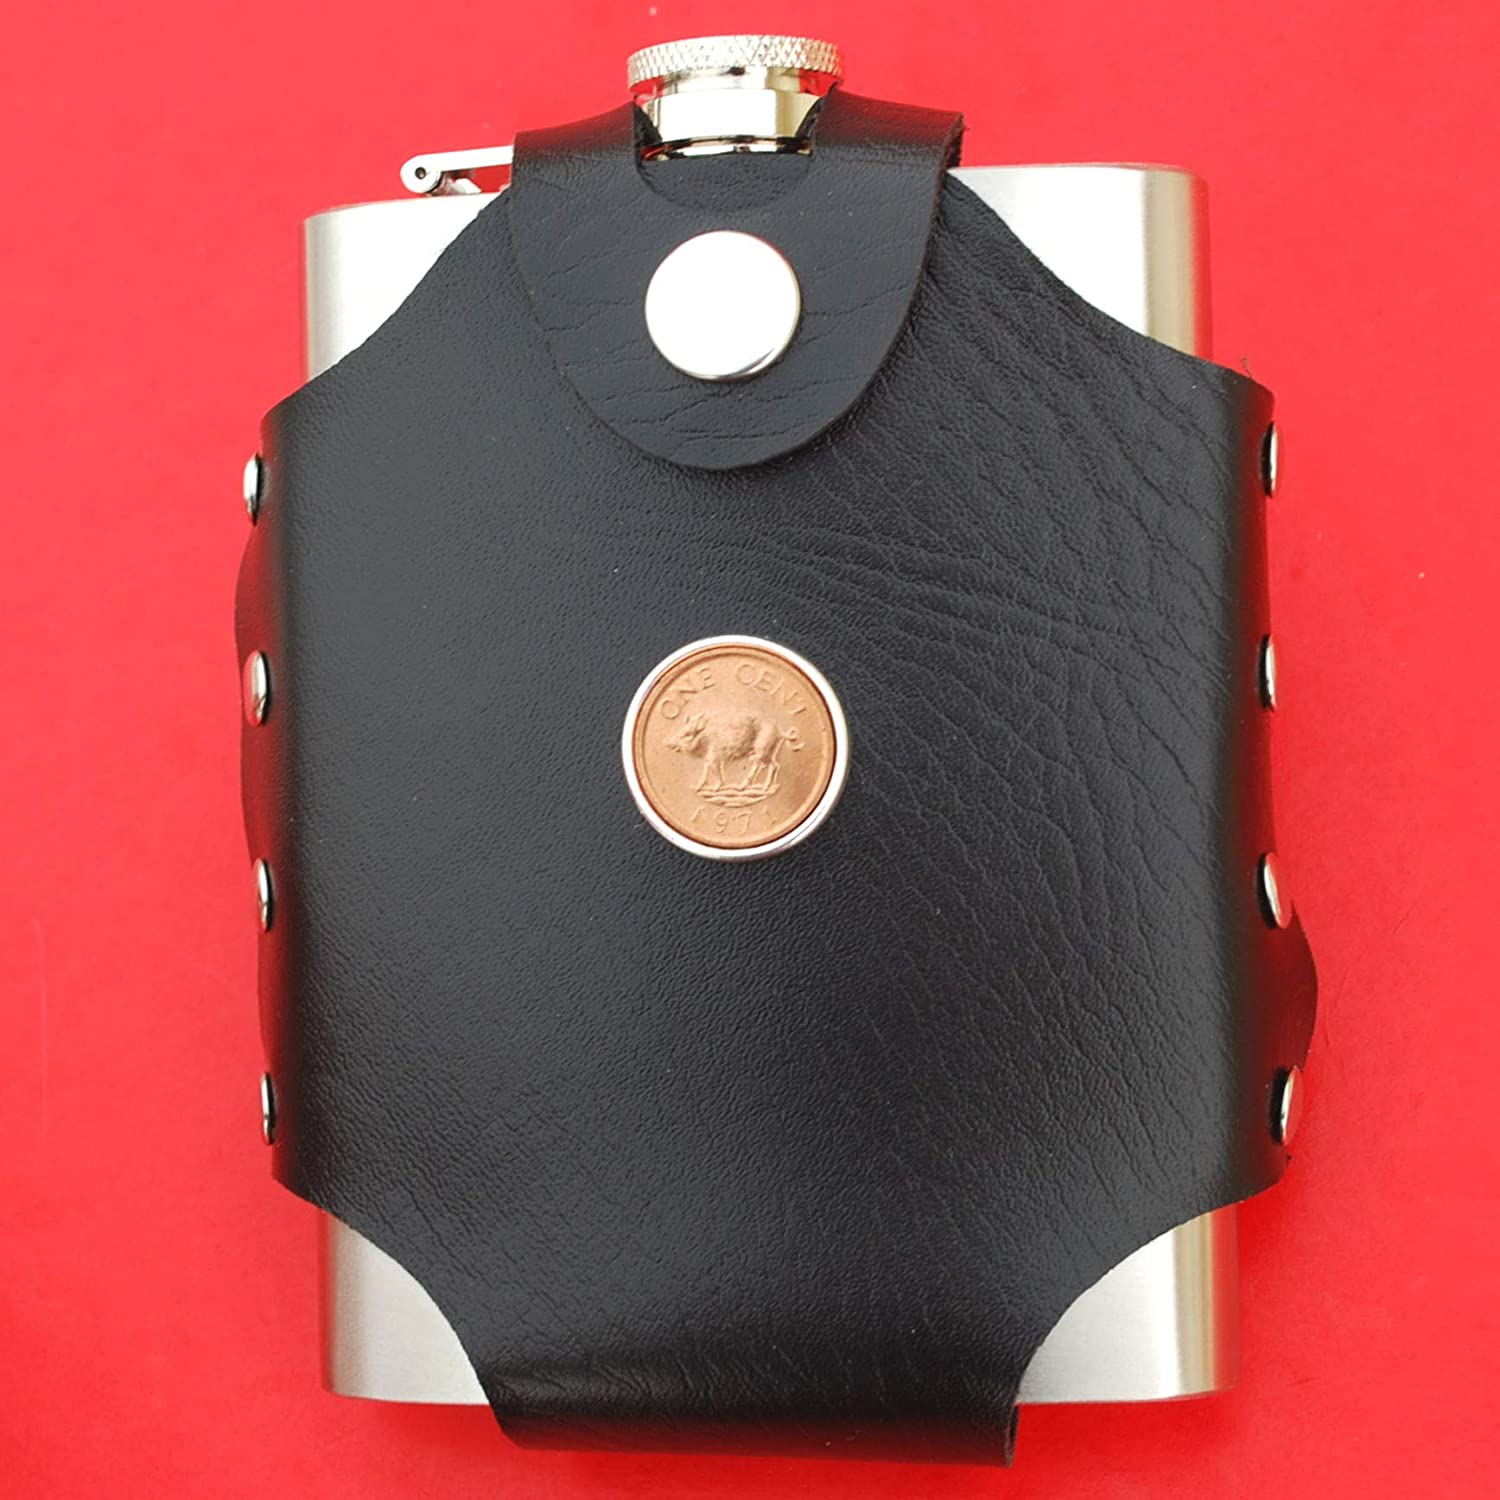 Bermuda 1971 One Cent BU Uncirculated Coin PU Leather Stainless Steel 8 Oz Hip Flask Wild Boar